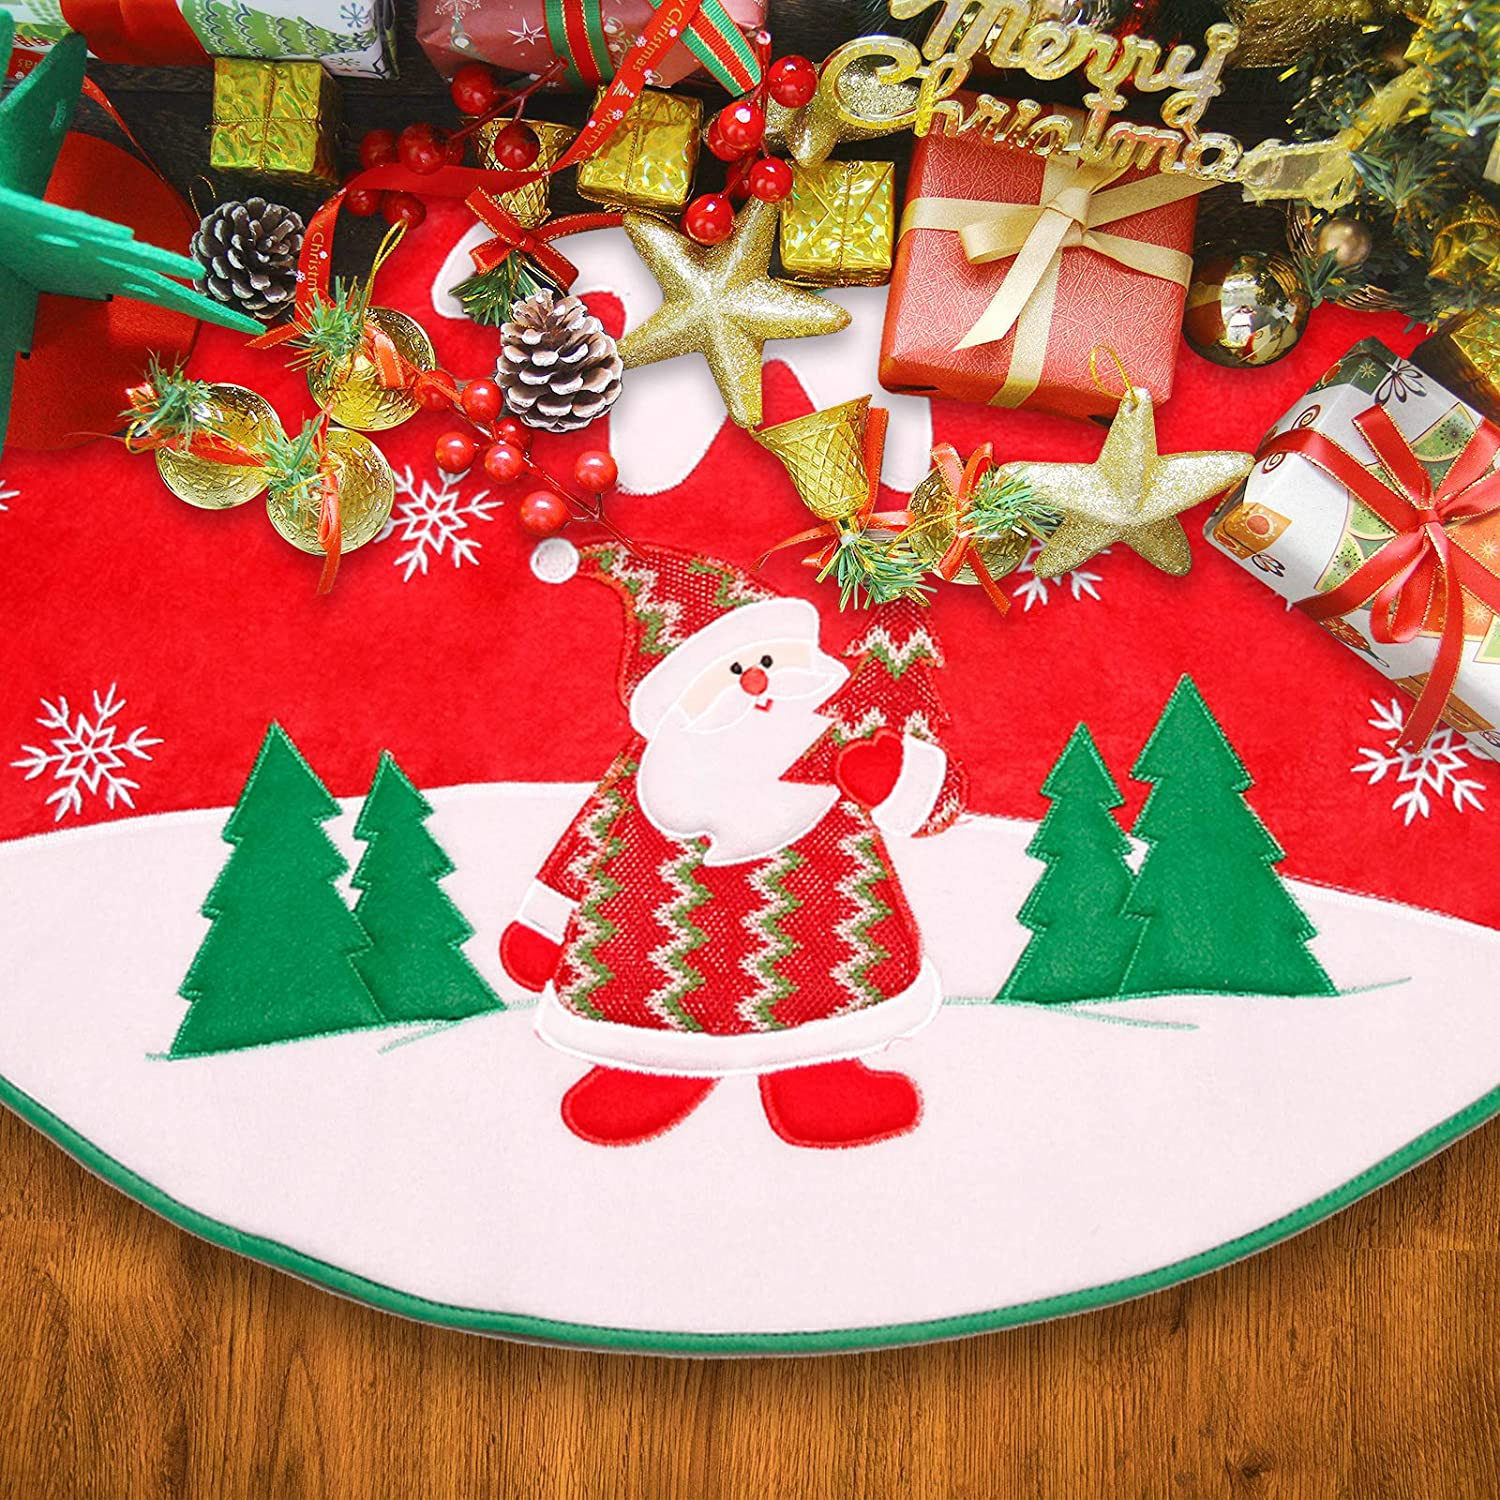 Christmas Tree Skirt, Rustic Merry Christmas Decorations Red Small Xmas Tree Collar Christmas Party Decor,Snowflake Creative Vintage Christmas Tree Decor for Farmhouse Fireplace Holiday Party, 35 inch